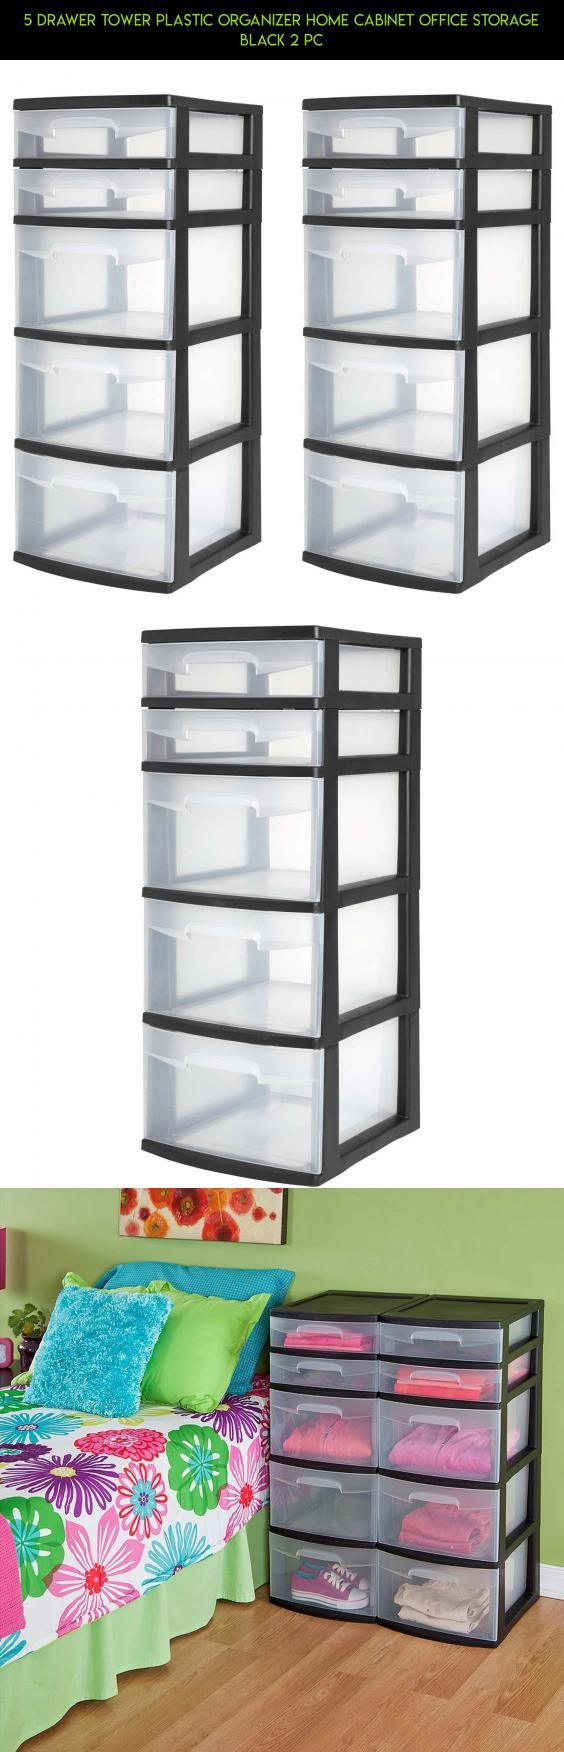 5 Drawer Tower Plastic Organizer Home Cabinet Office Storage Black 2 PC #parts #plastic #technology #plans #drone #products #camera #tech #storage #shopping #racing #kit #5 #gadgets #organizer #fpv